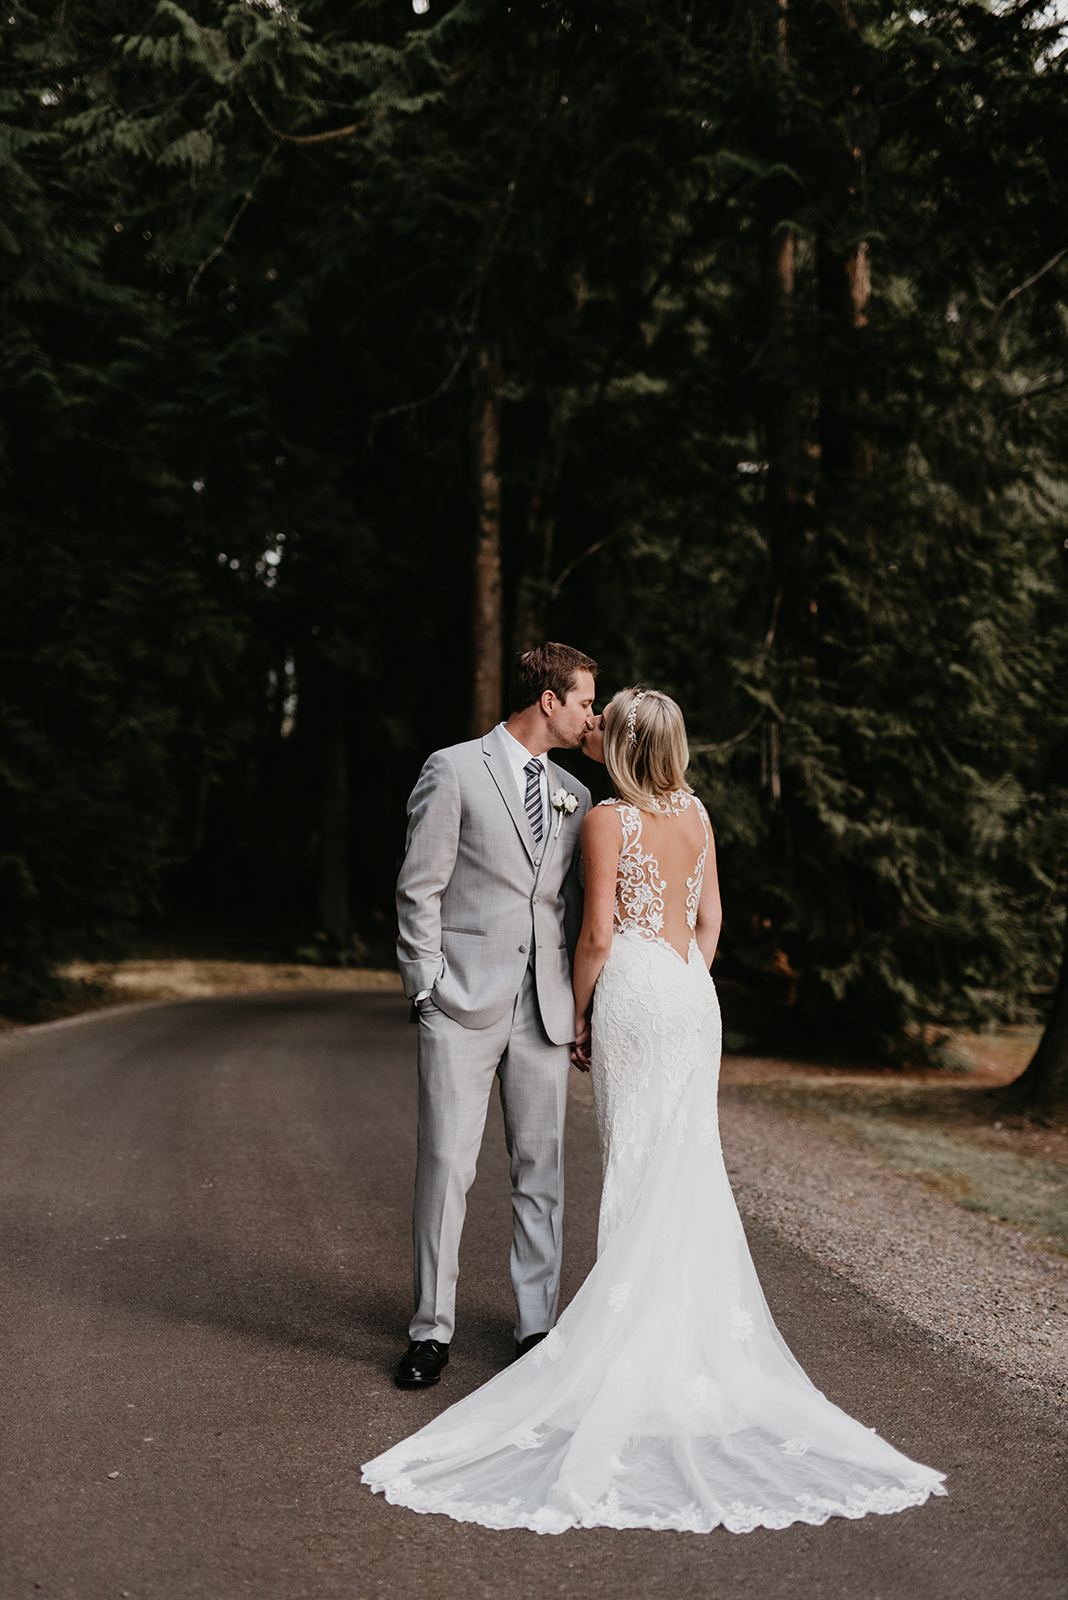 Thompson Wedding in Seattle, Washington